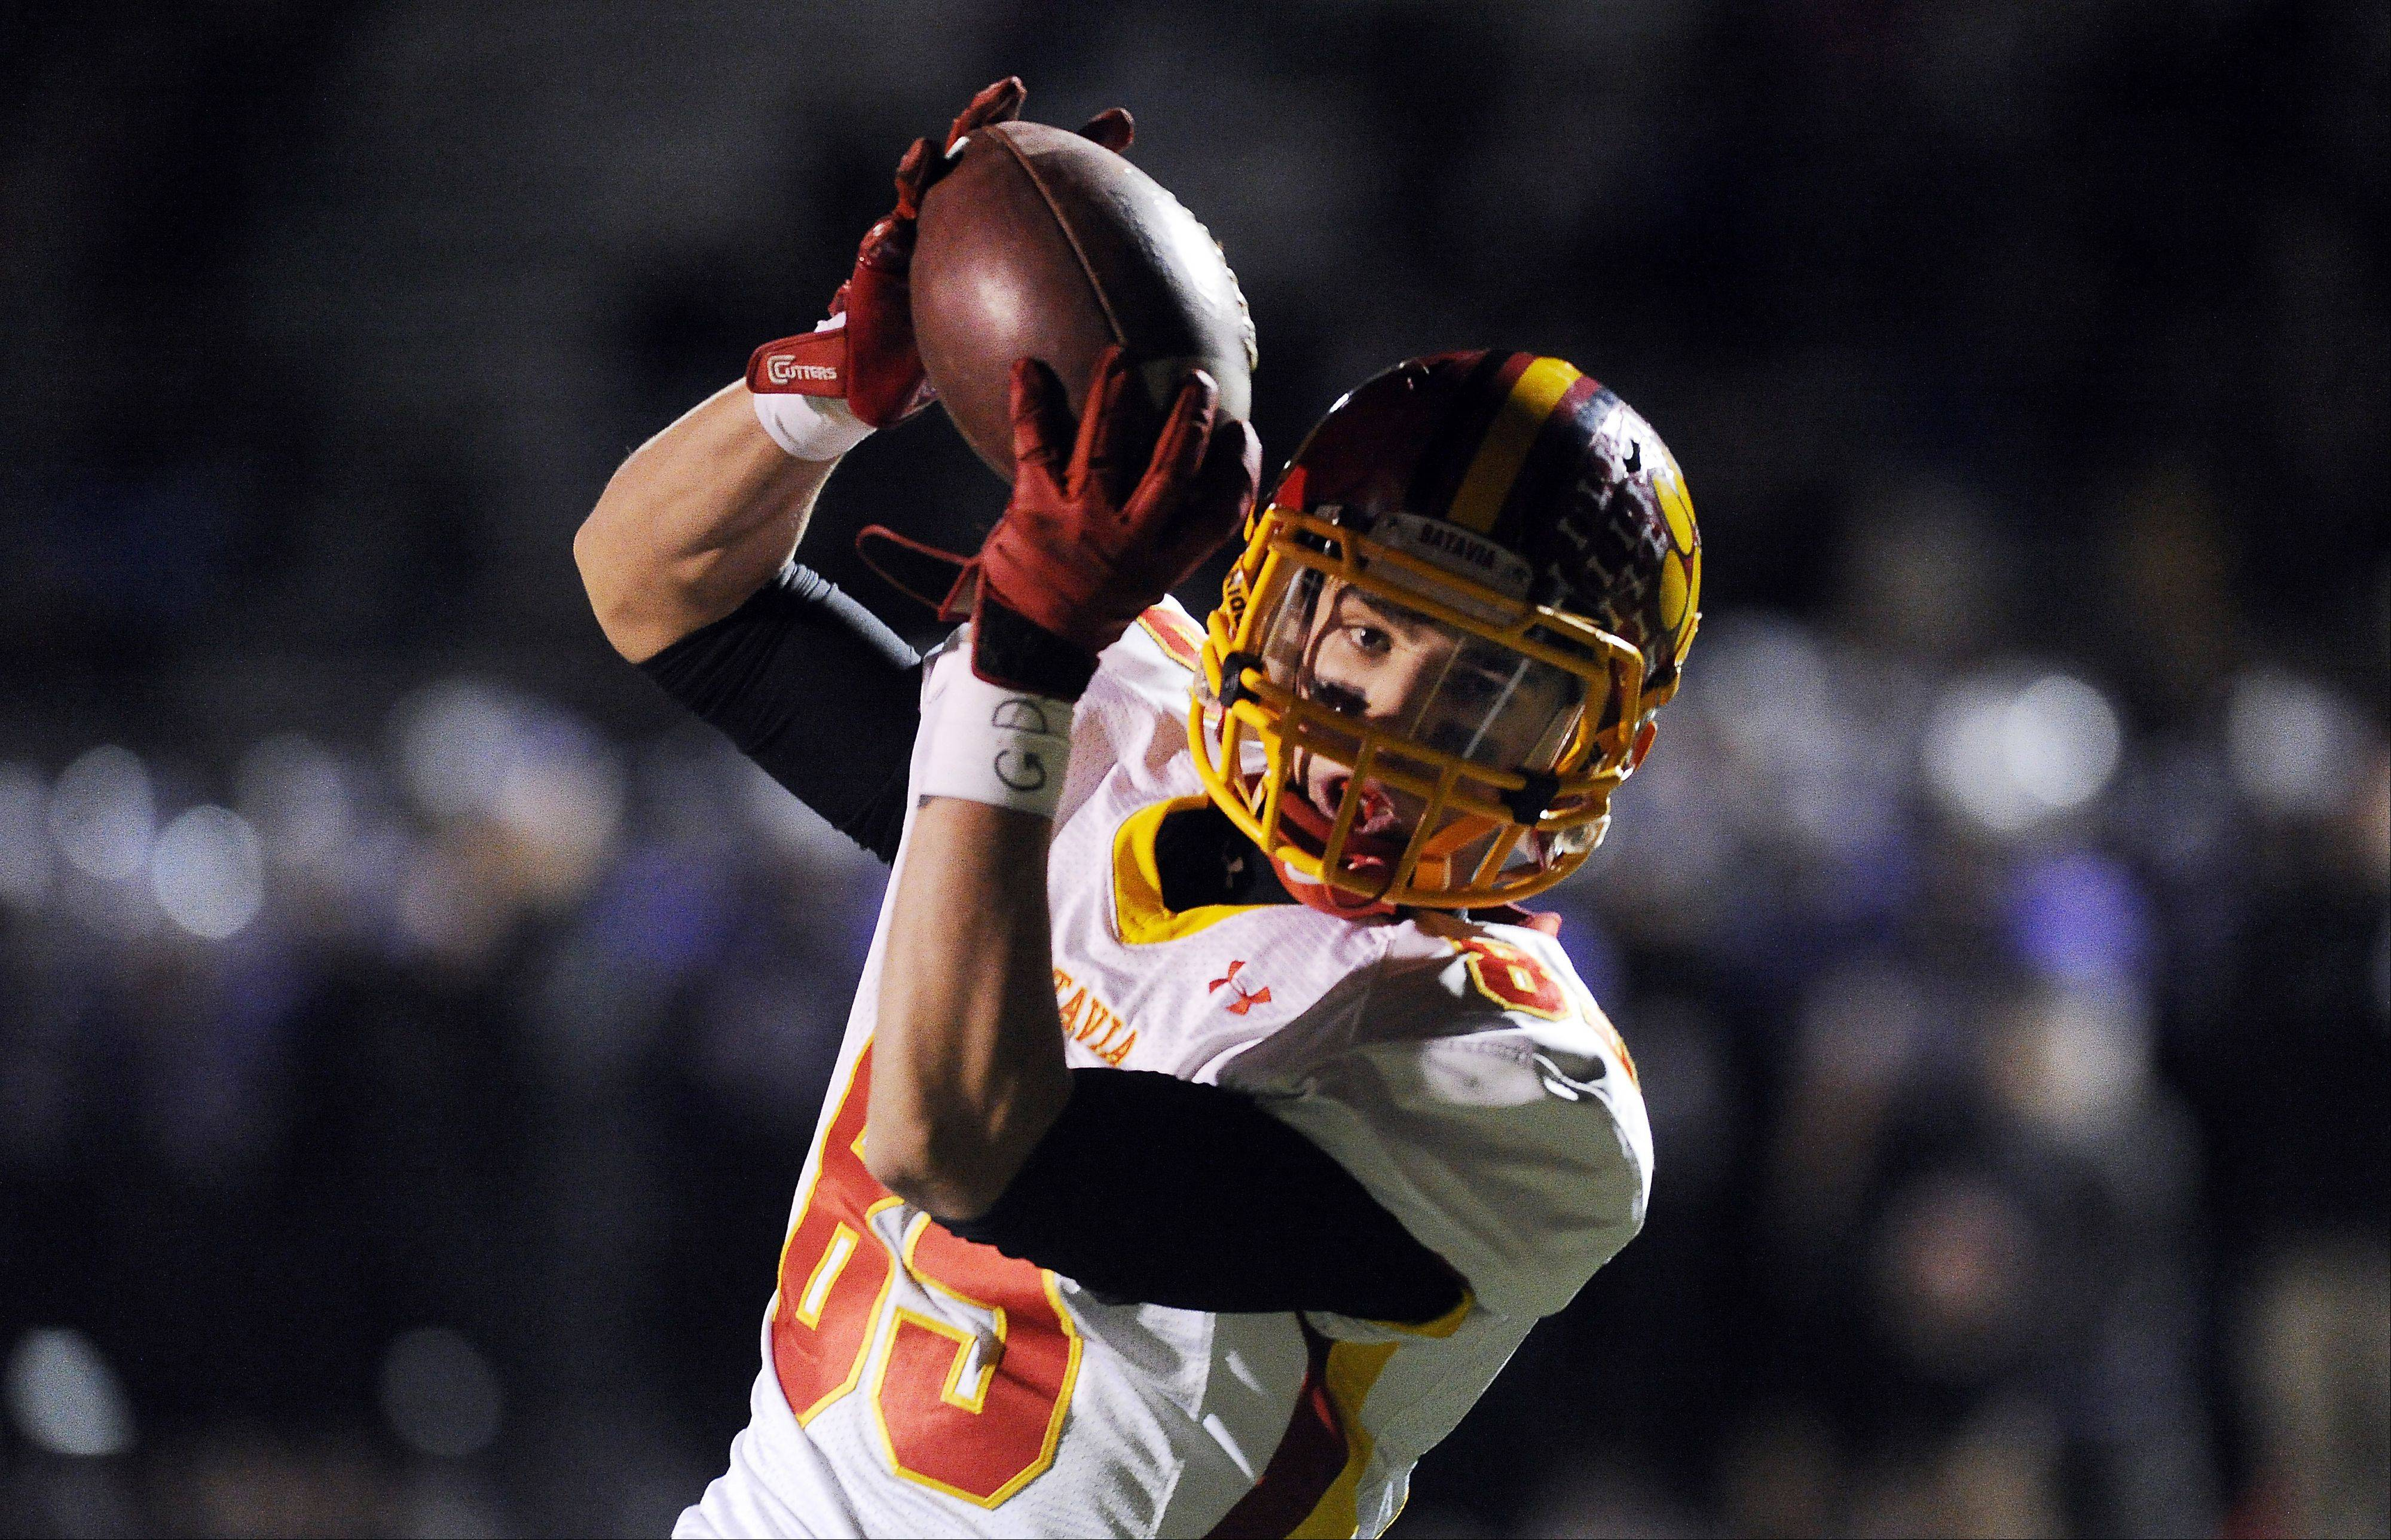 Batavia's Jordan Zwart hauls in a second-quarter touchdown against Rolling Meadows in the Class 6A playoffs Saturday at Rolling Meadows.